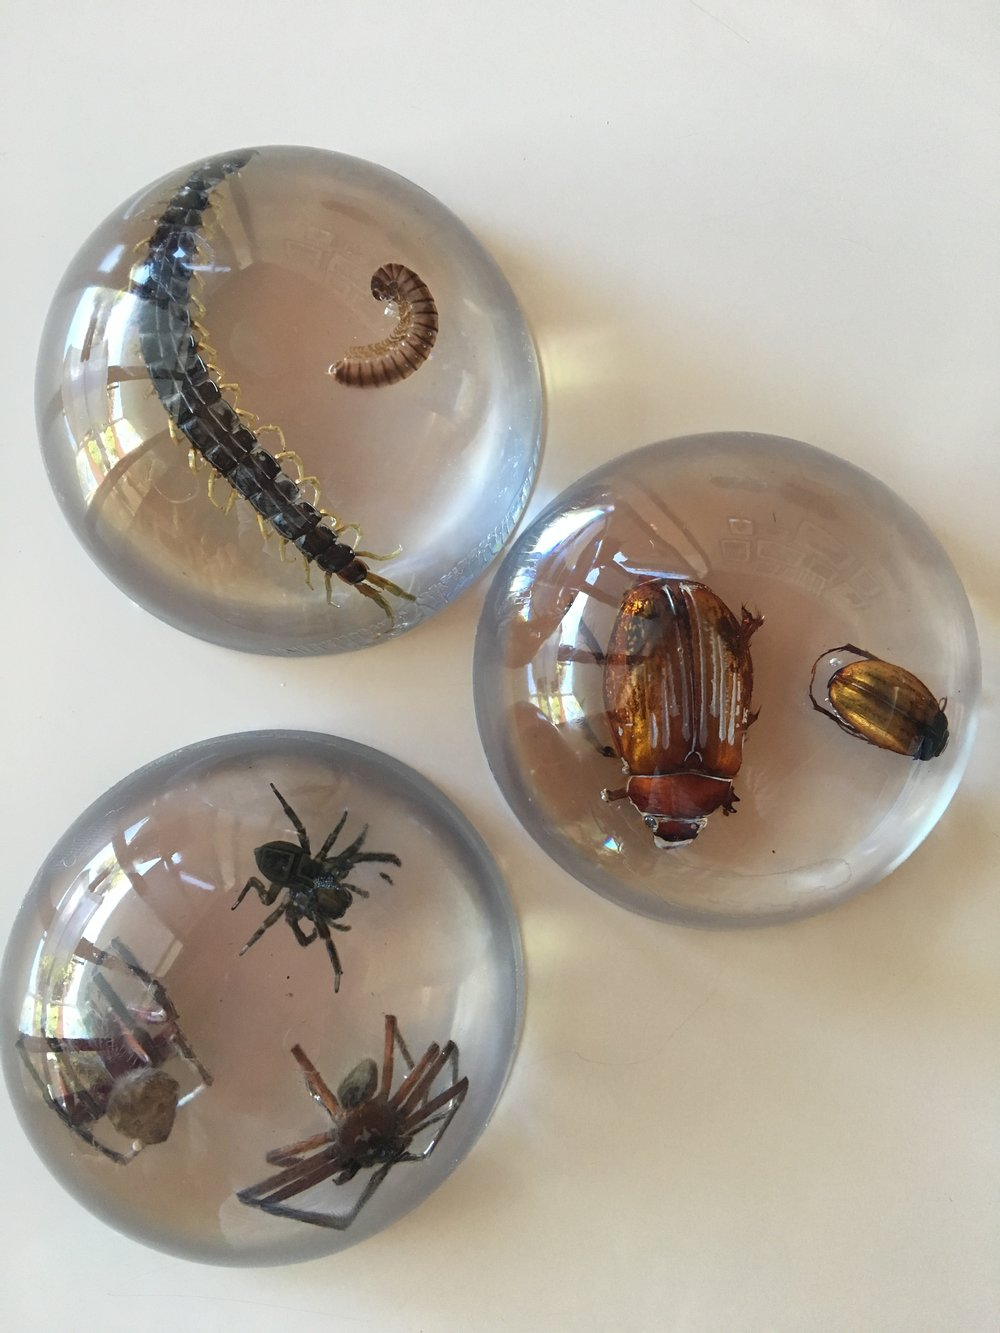 Insects cast in resin - Insect paperweight